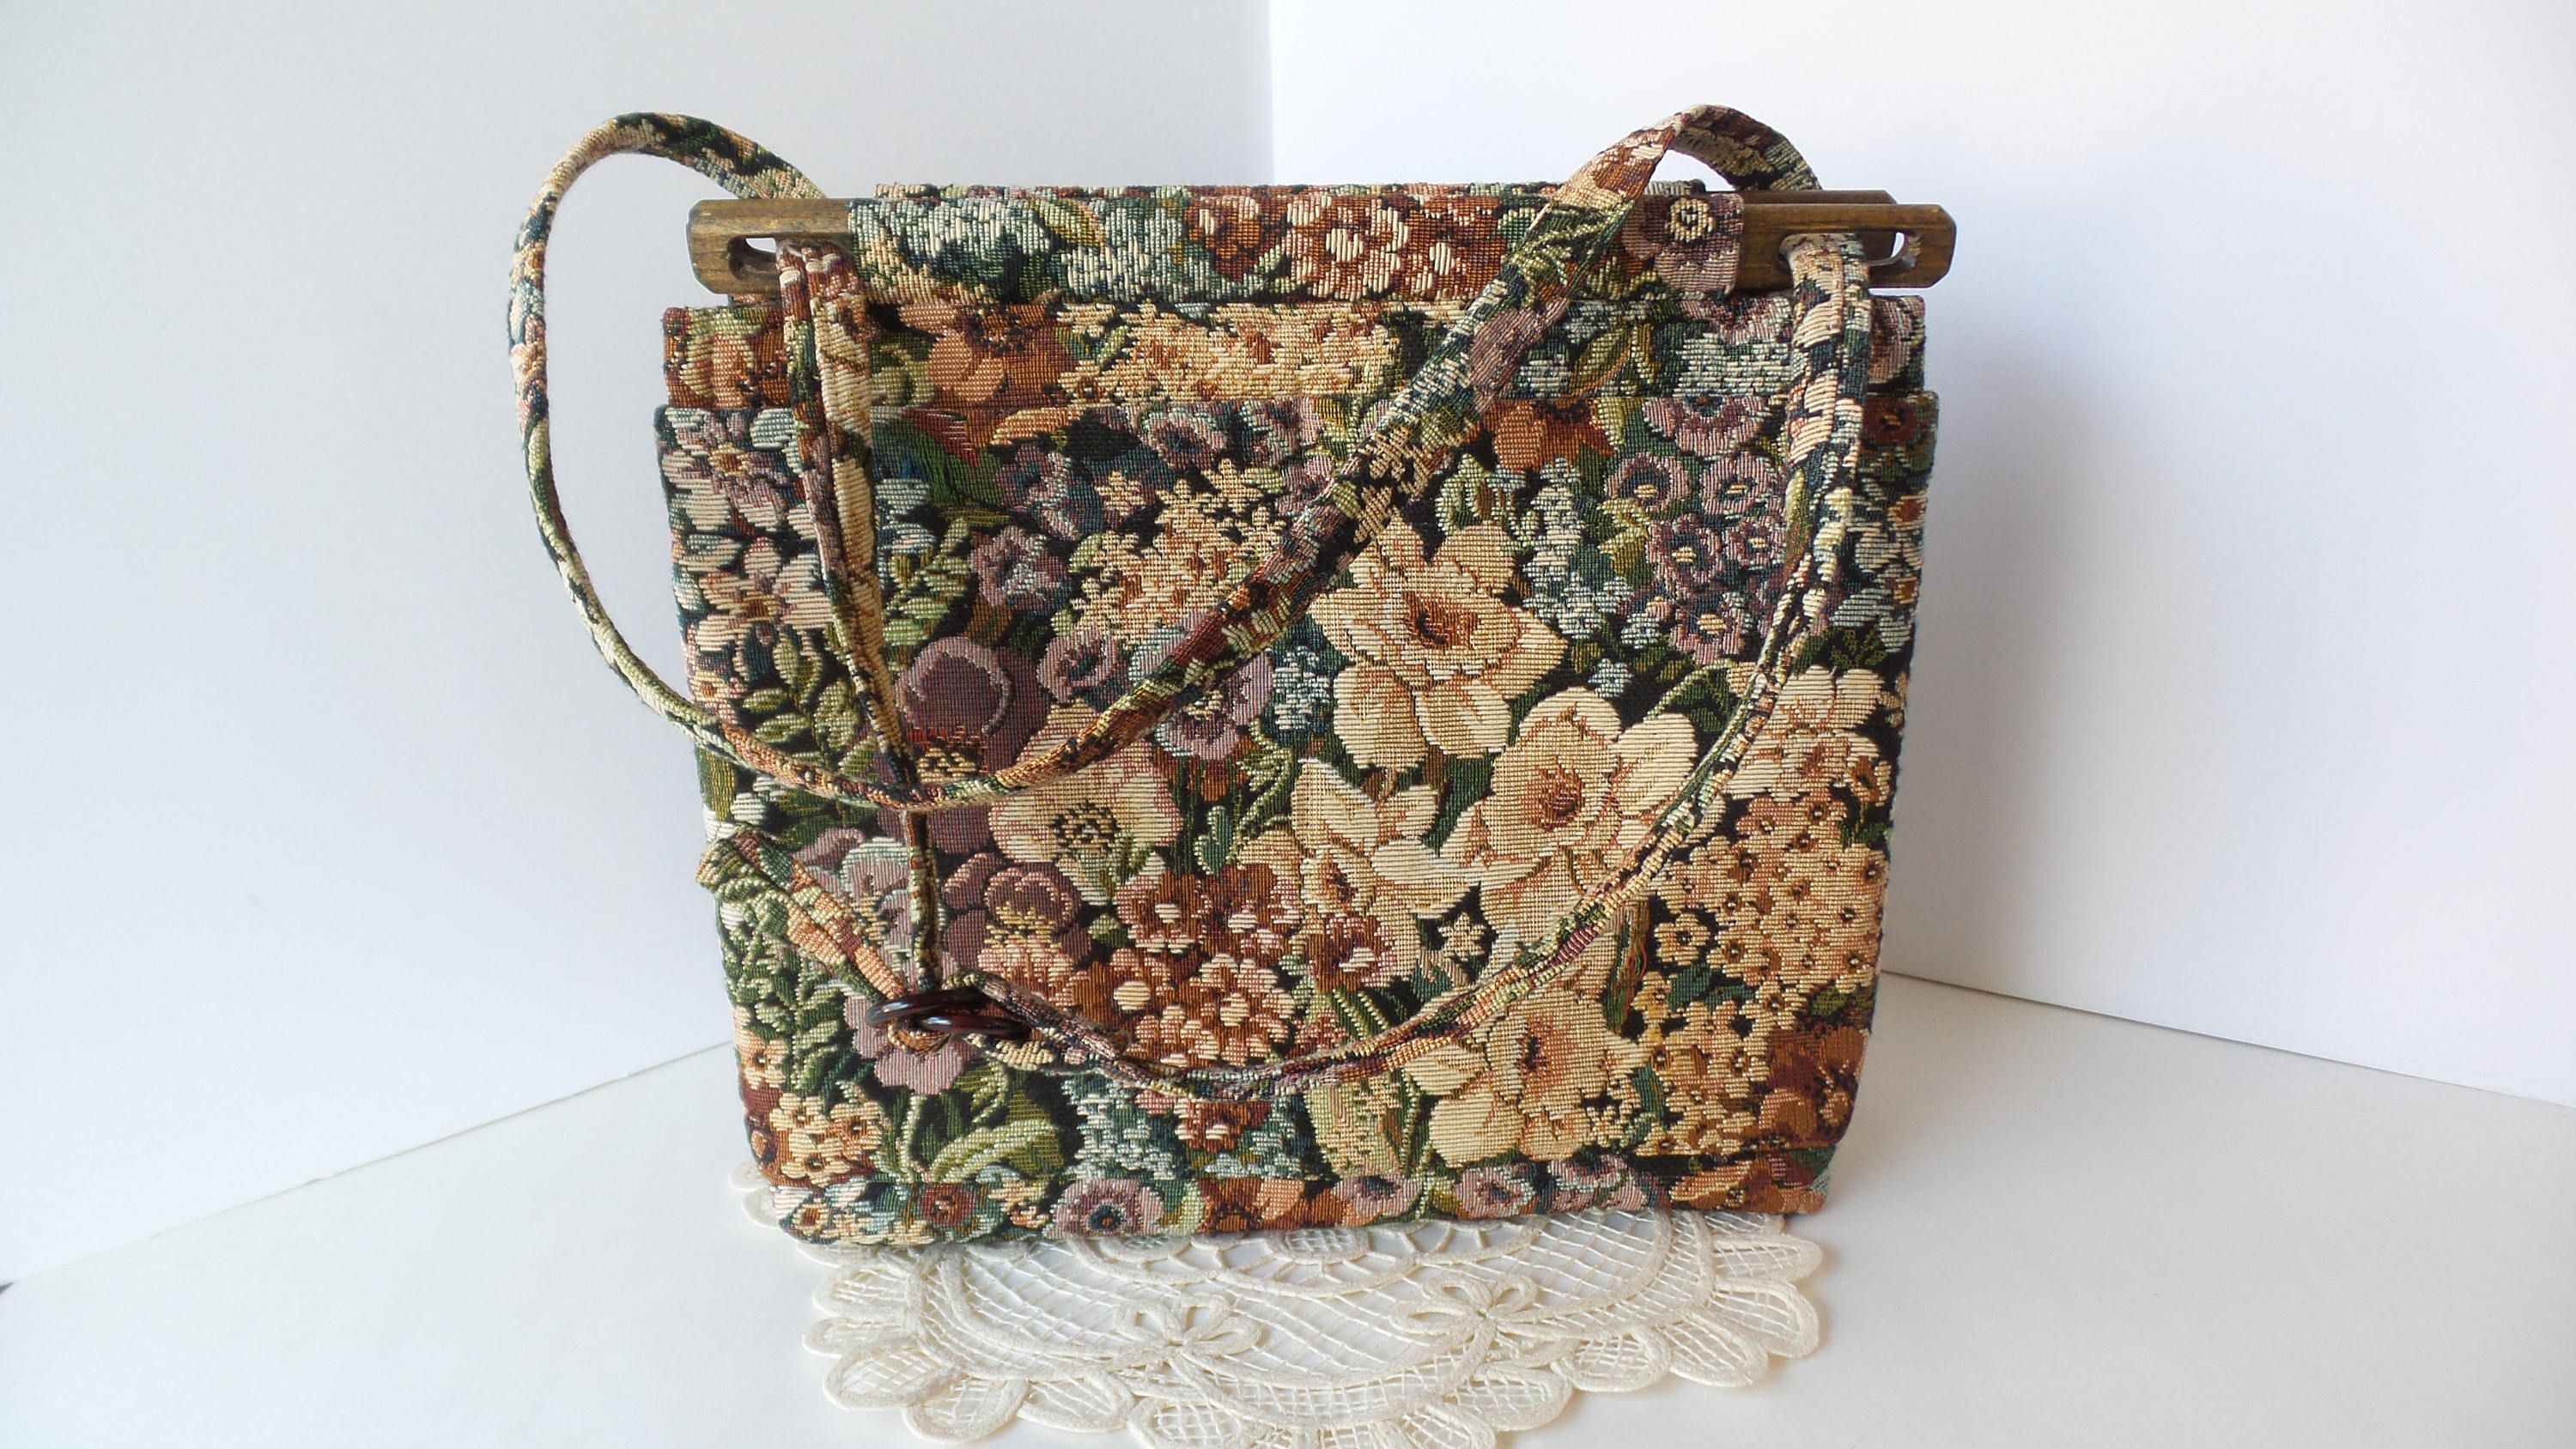 Vintage Tapestry Purse By Toby Weston Fl Retro Handbag Tote Woodland Hills California Pixiegoes2market On